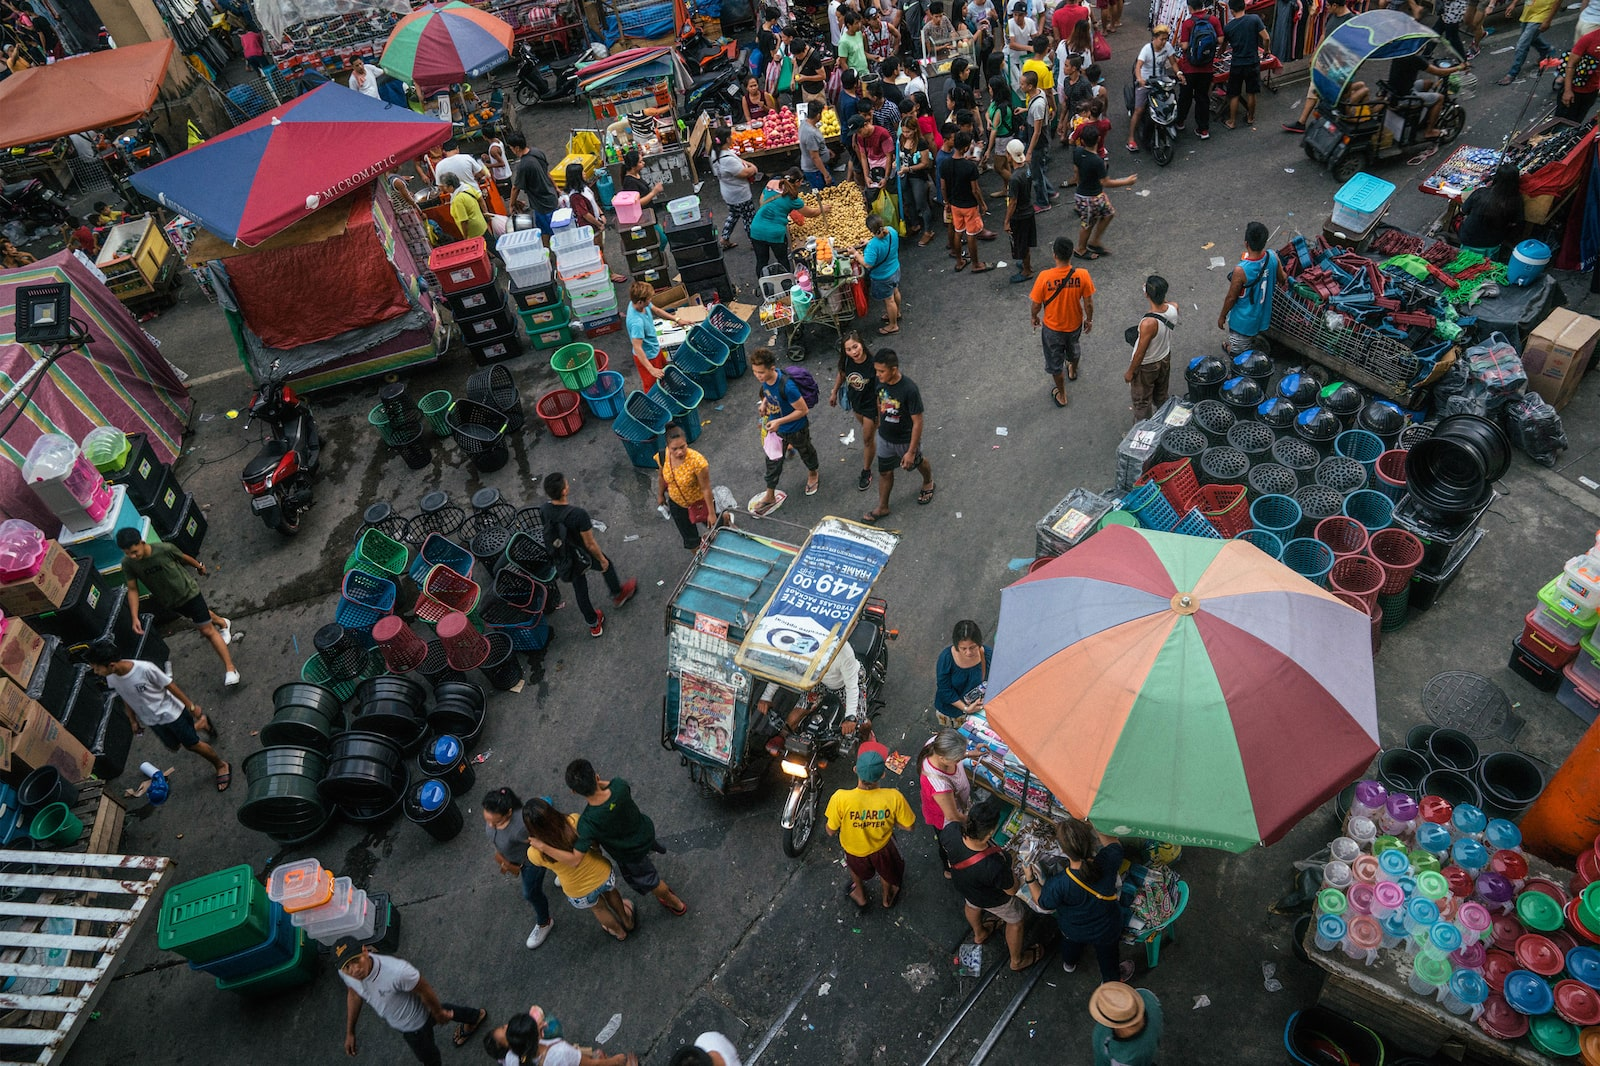 Aerial view of crowd in Divisoria Market